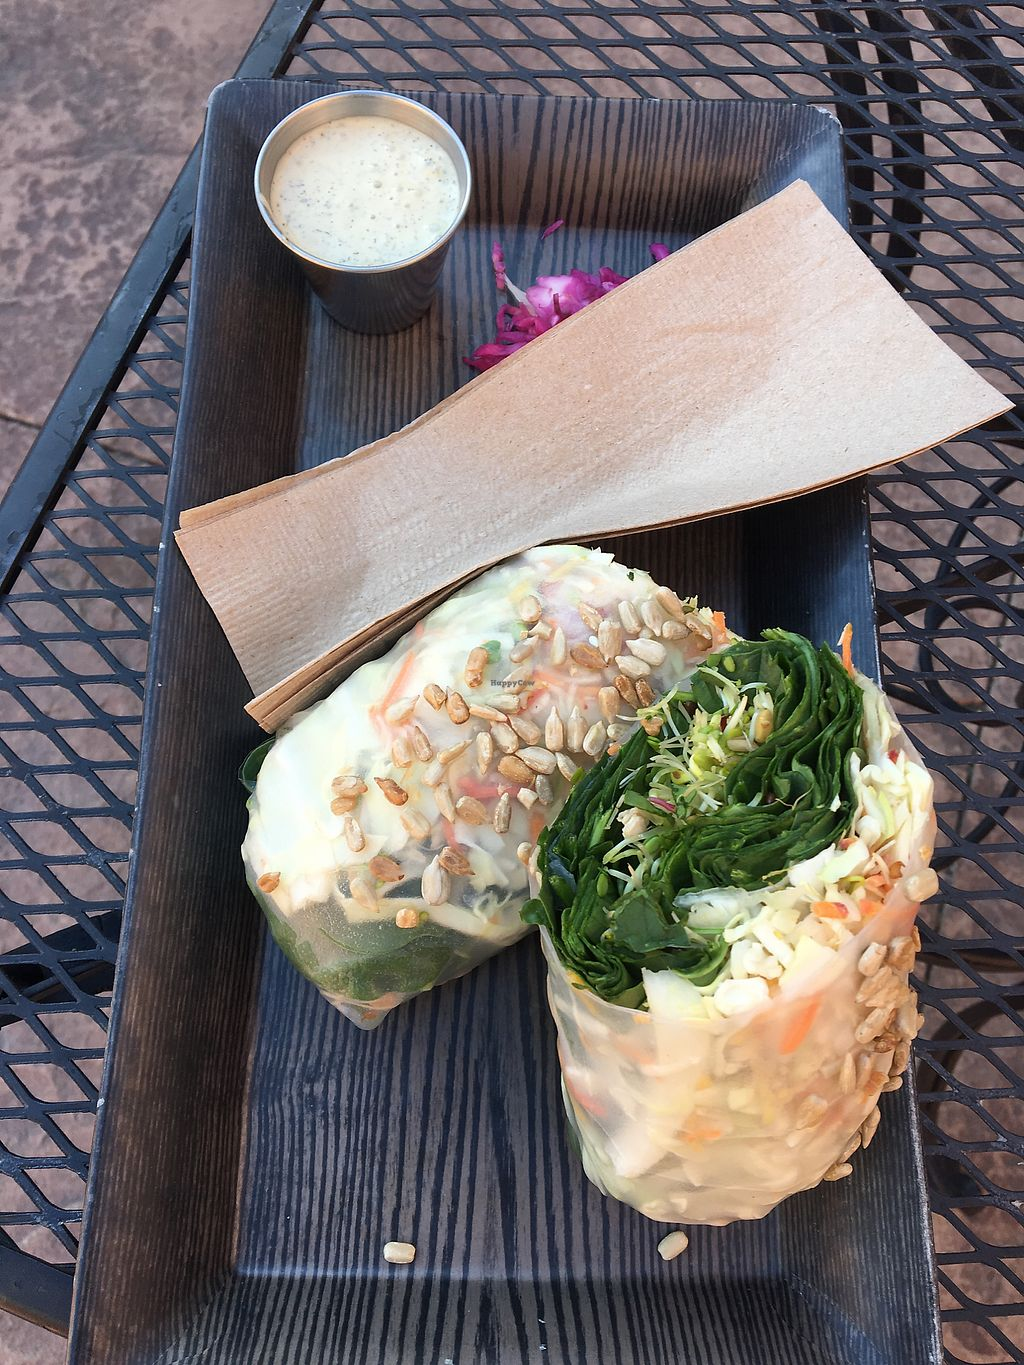 """Photo of DeLuxe  by <a href=""""/members/profile/jessiiventure"""">jessiiventure</a> <br/>The OG hand roll salad added tamari mushrooms <br/> October 21, 2017  - <a href='/contact/abuse/image/101515/317141'>Report</a>"""